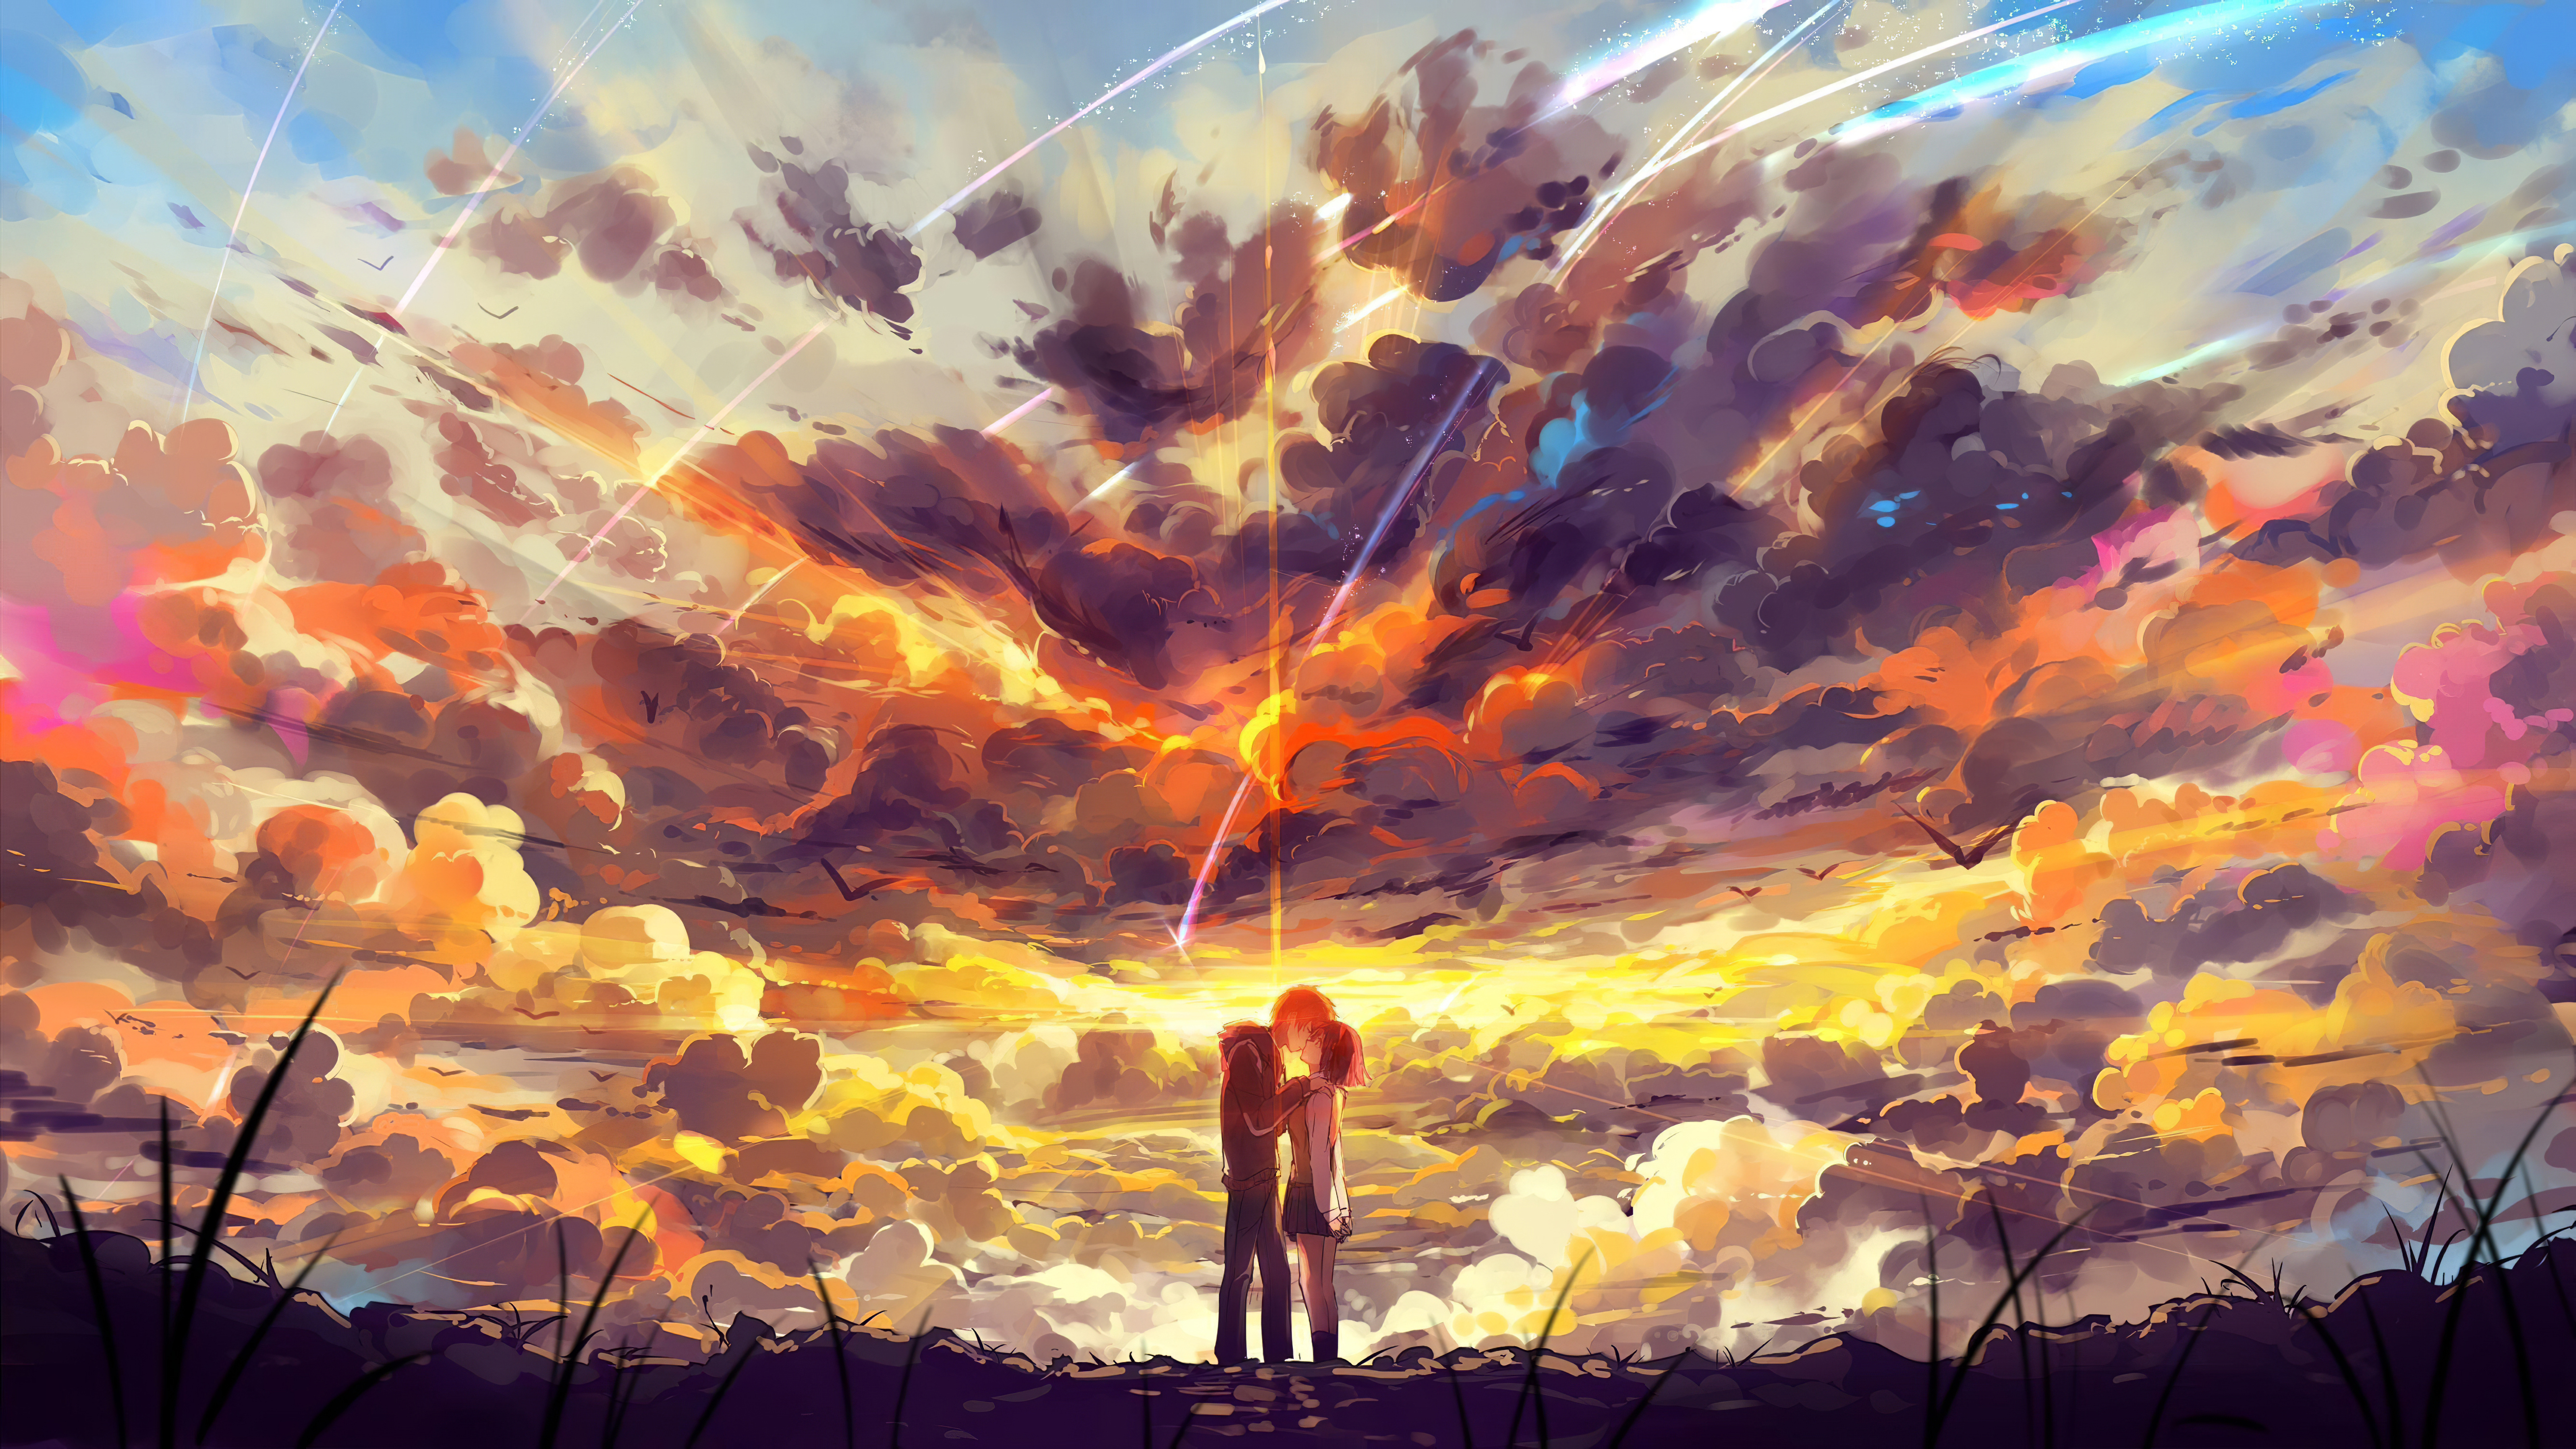 1125x2436 Kimi No Nawa Anime Couple 5k Iphone Xs Iphone 10 Iphone